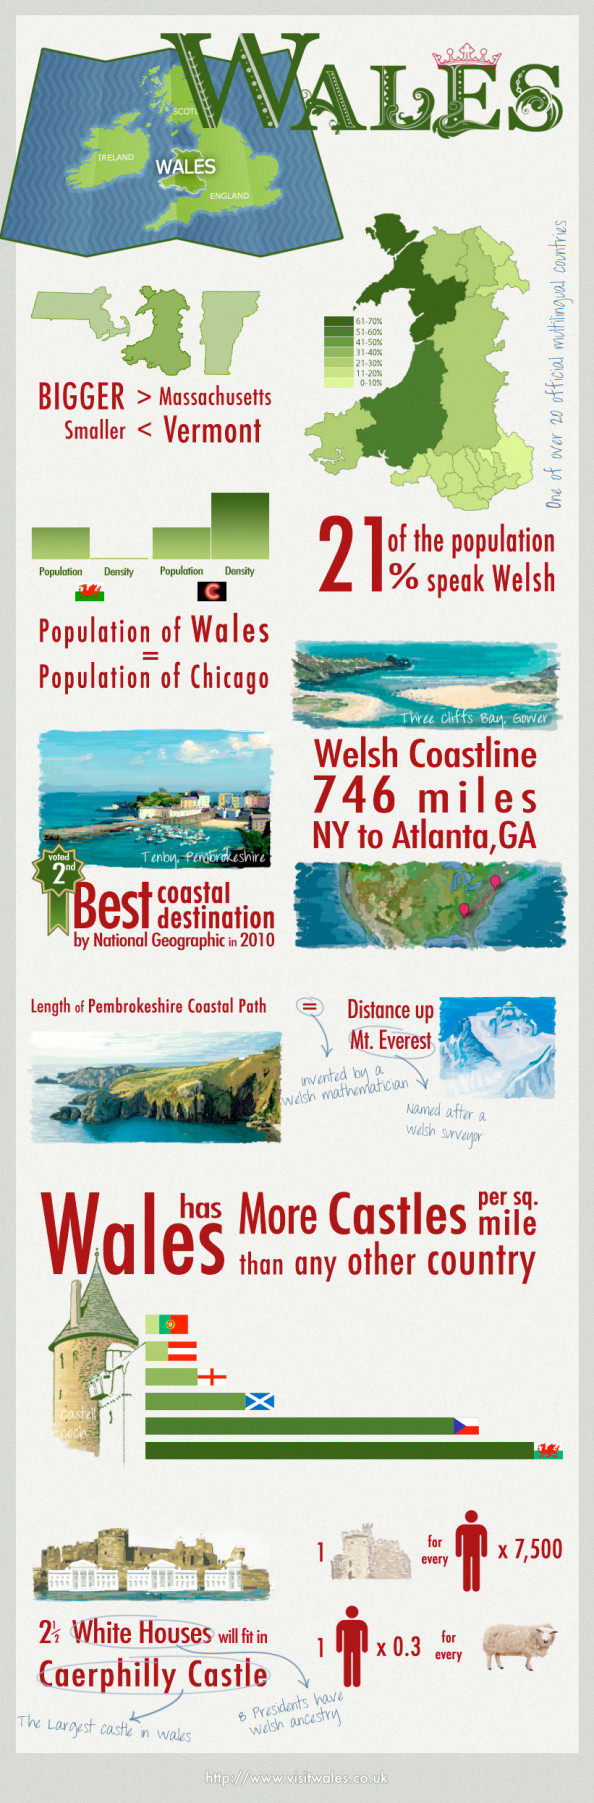 All About Wales Infographic